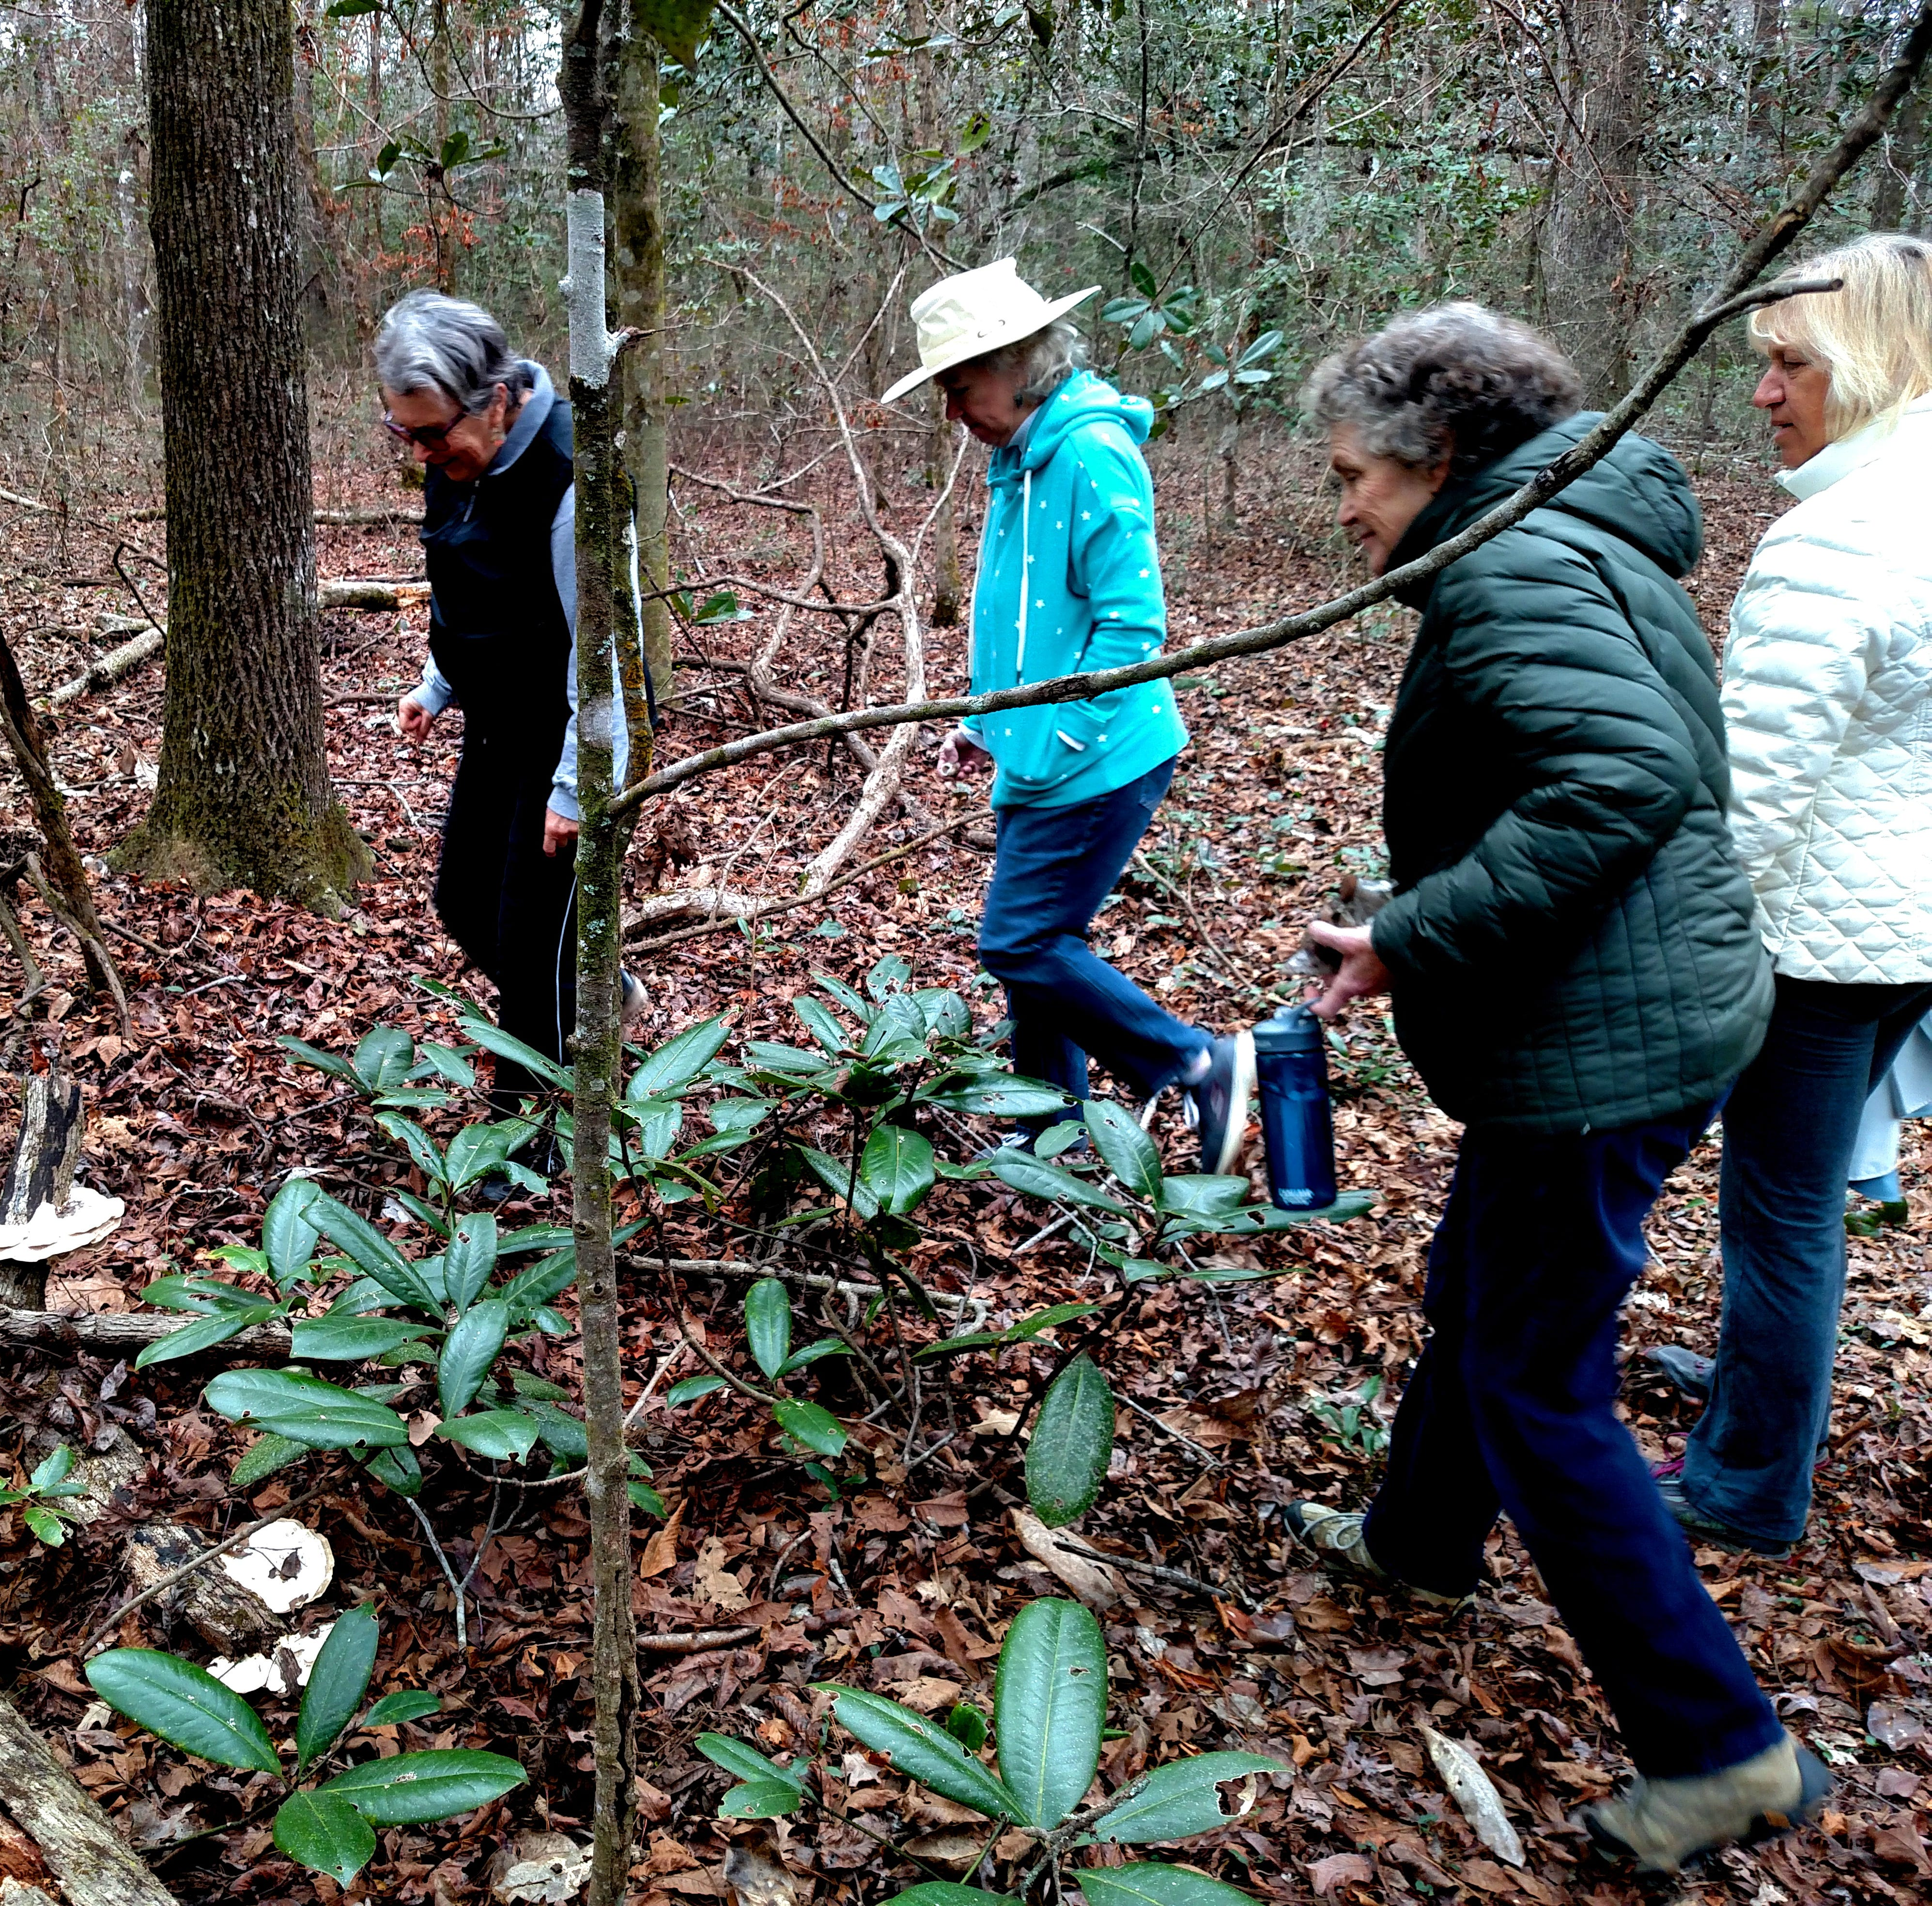 Forest treasures abound amid old growth at Thomasville's Lost Creek